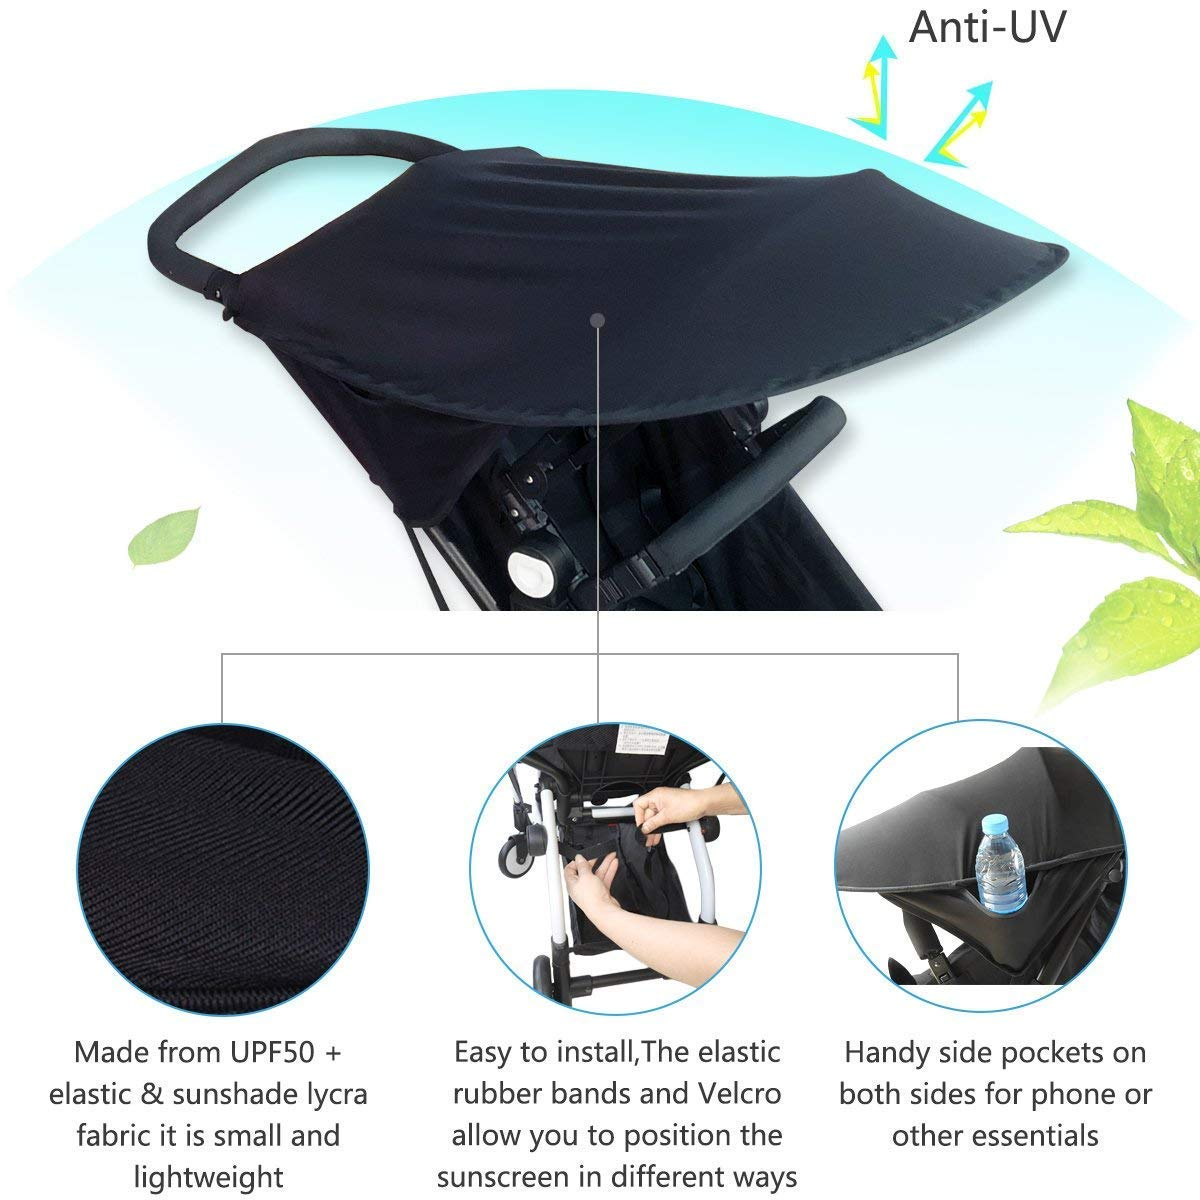 ZLMI Baby Stroller Sun Cover,Baby Carriage Awning,Infant Pushchair Sun Shade Baby Stroller Black Sun Shield Has Excellent UV Protection by ZLMI (Image #5)